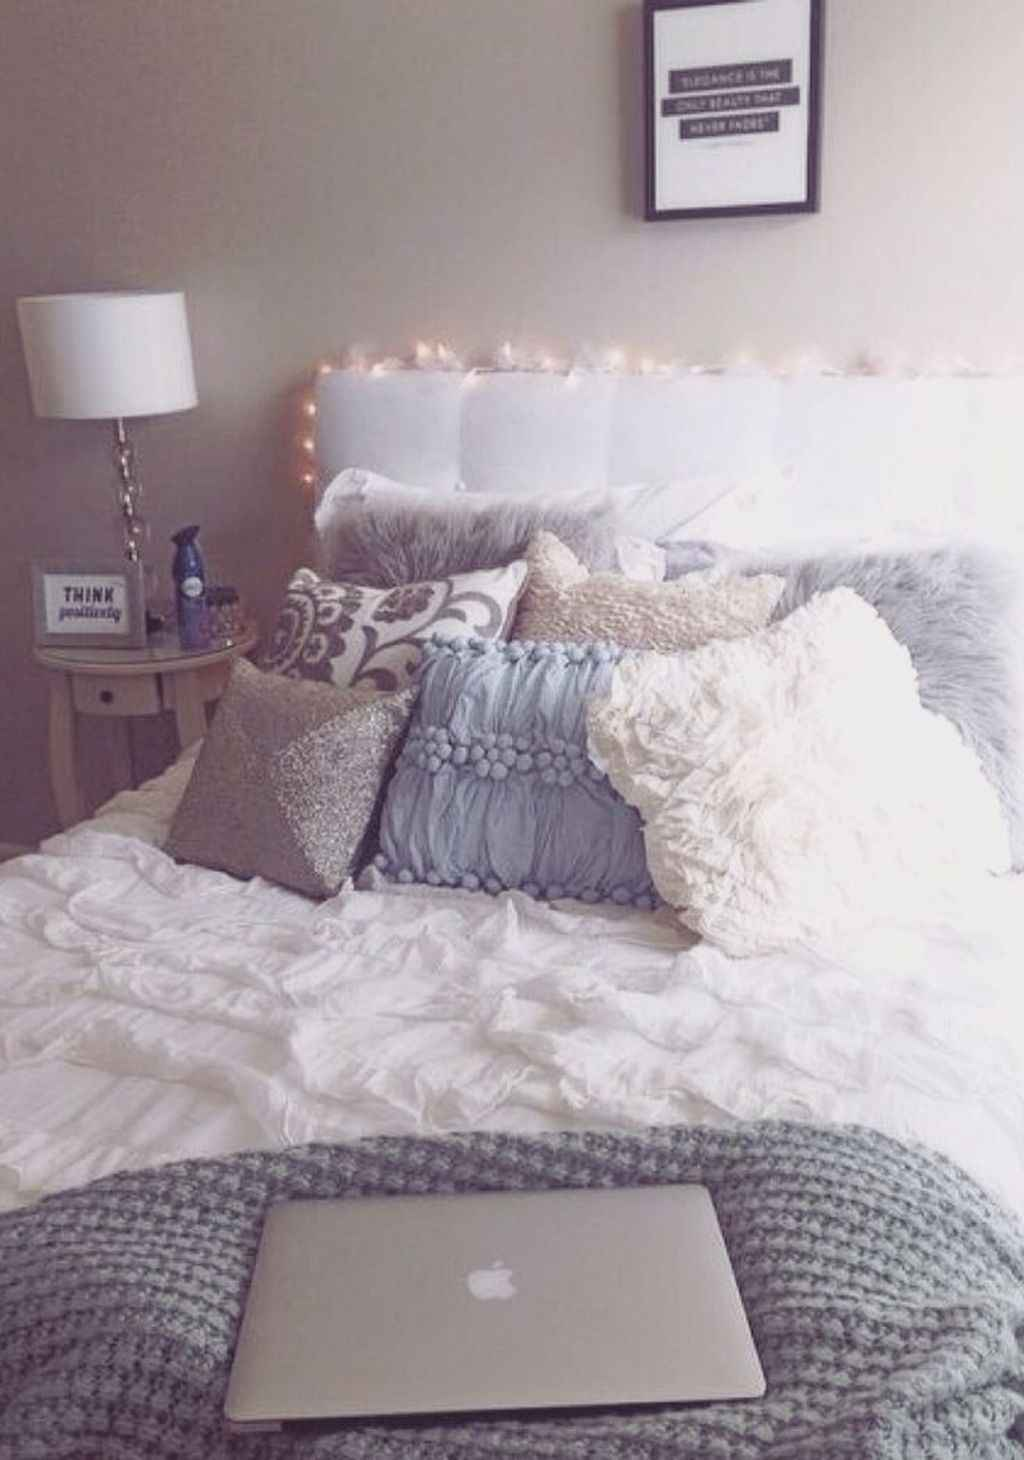 Clever college apartment decorating ideas on a budget (53)